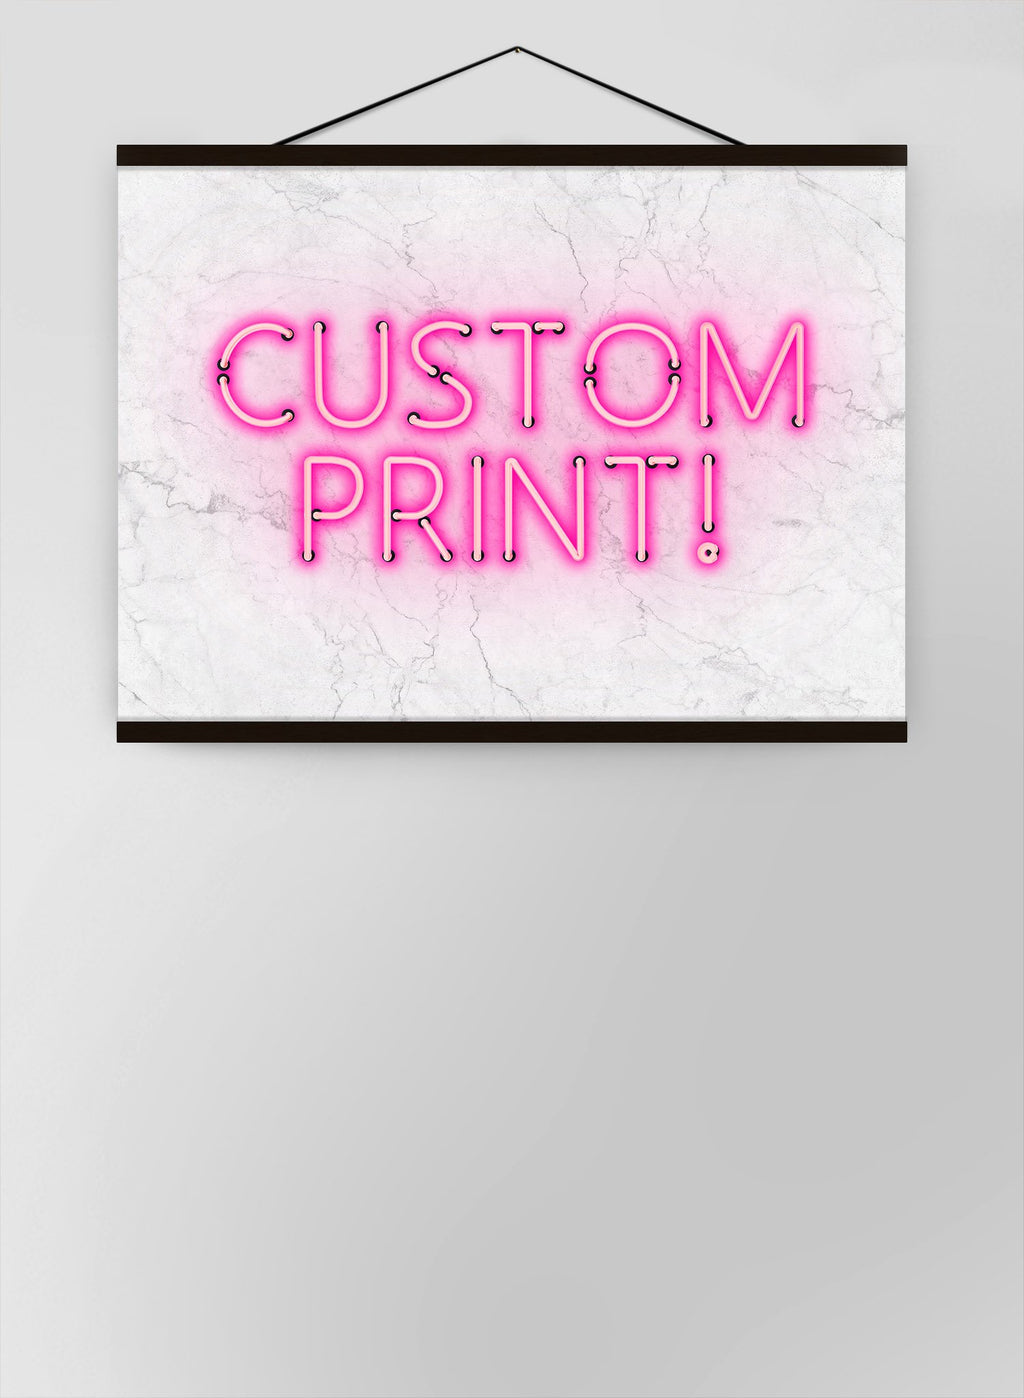 Custom Neon Sign Landscape White Marble Canvas